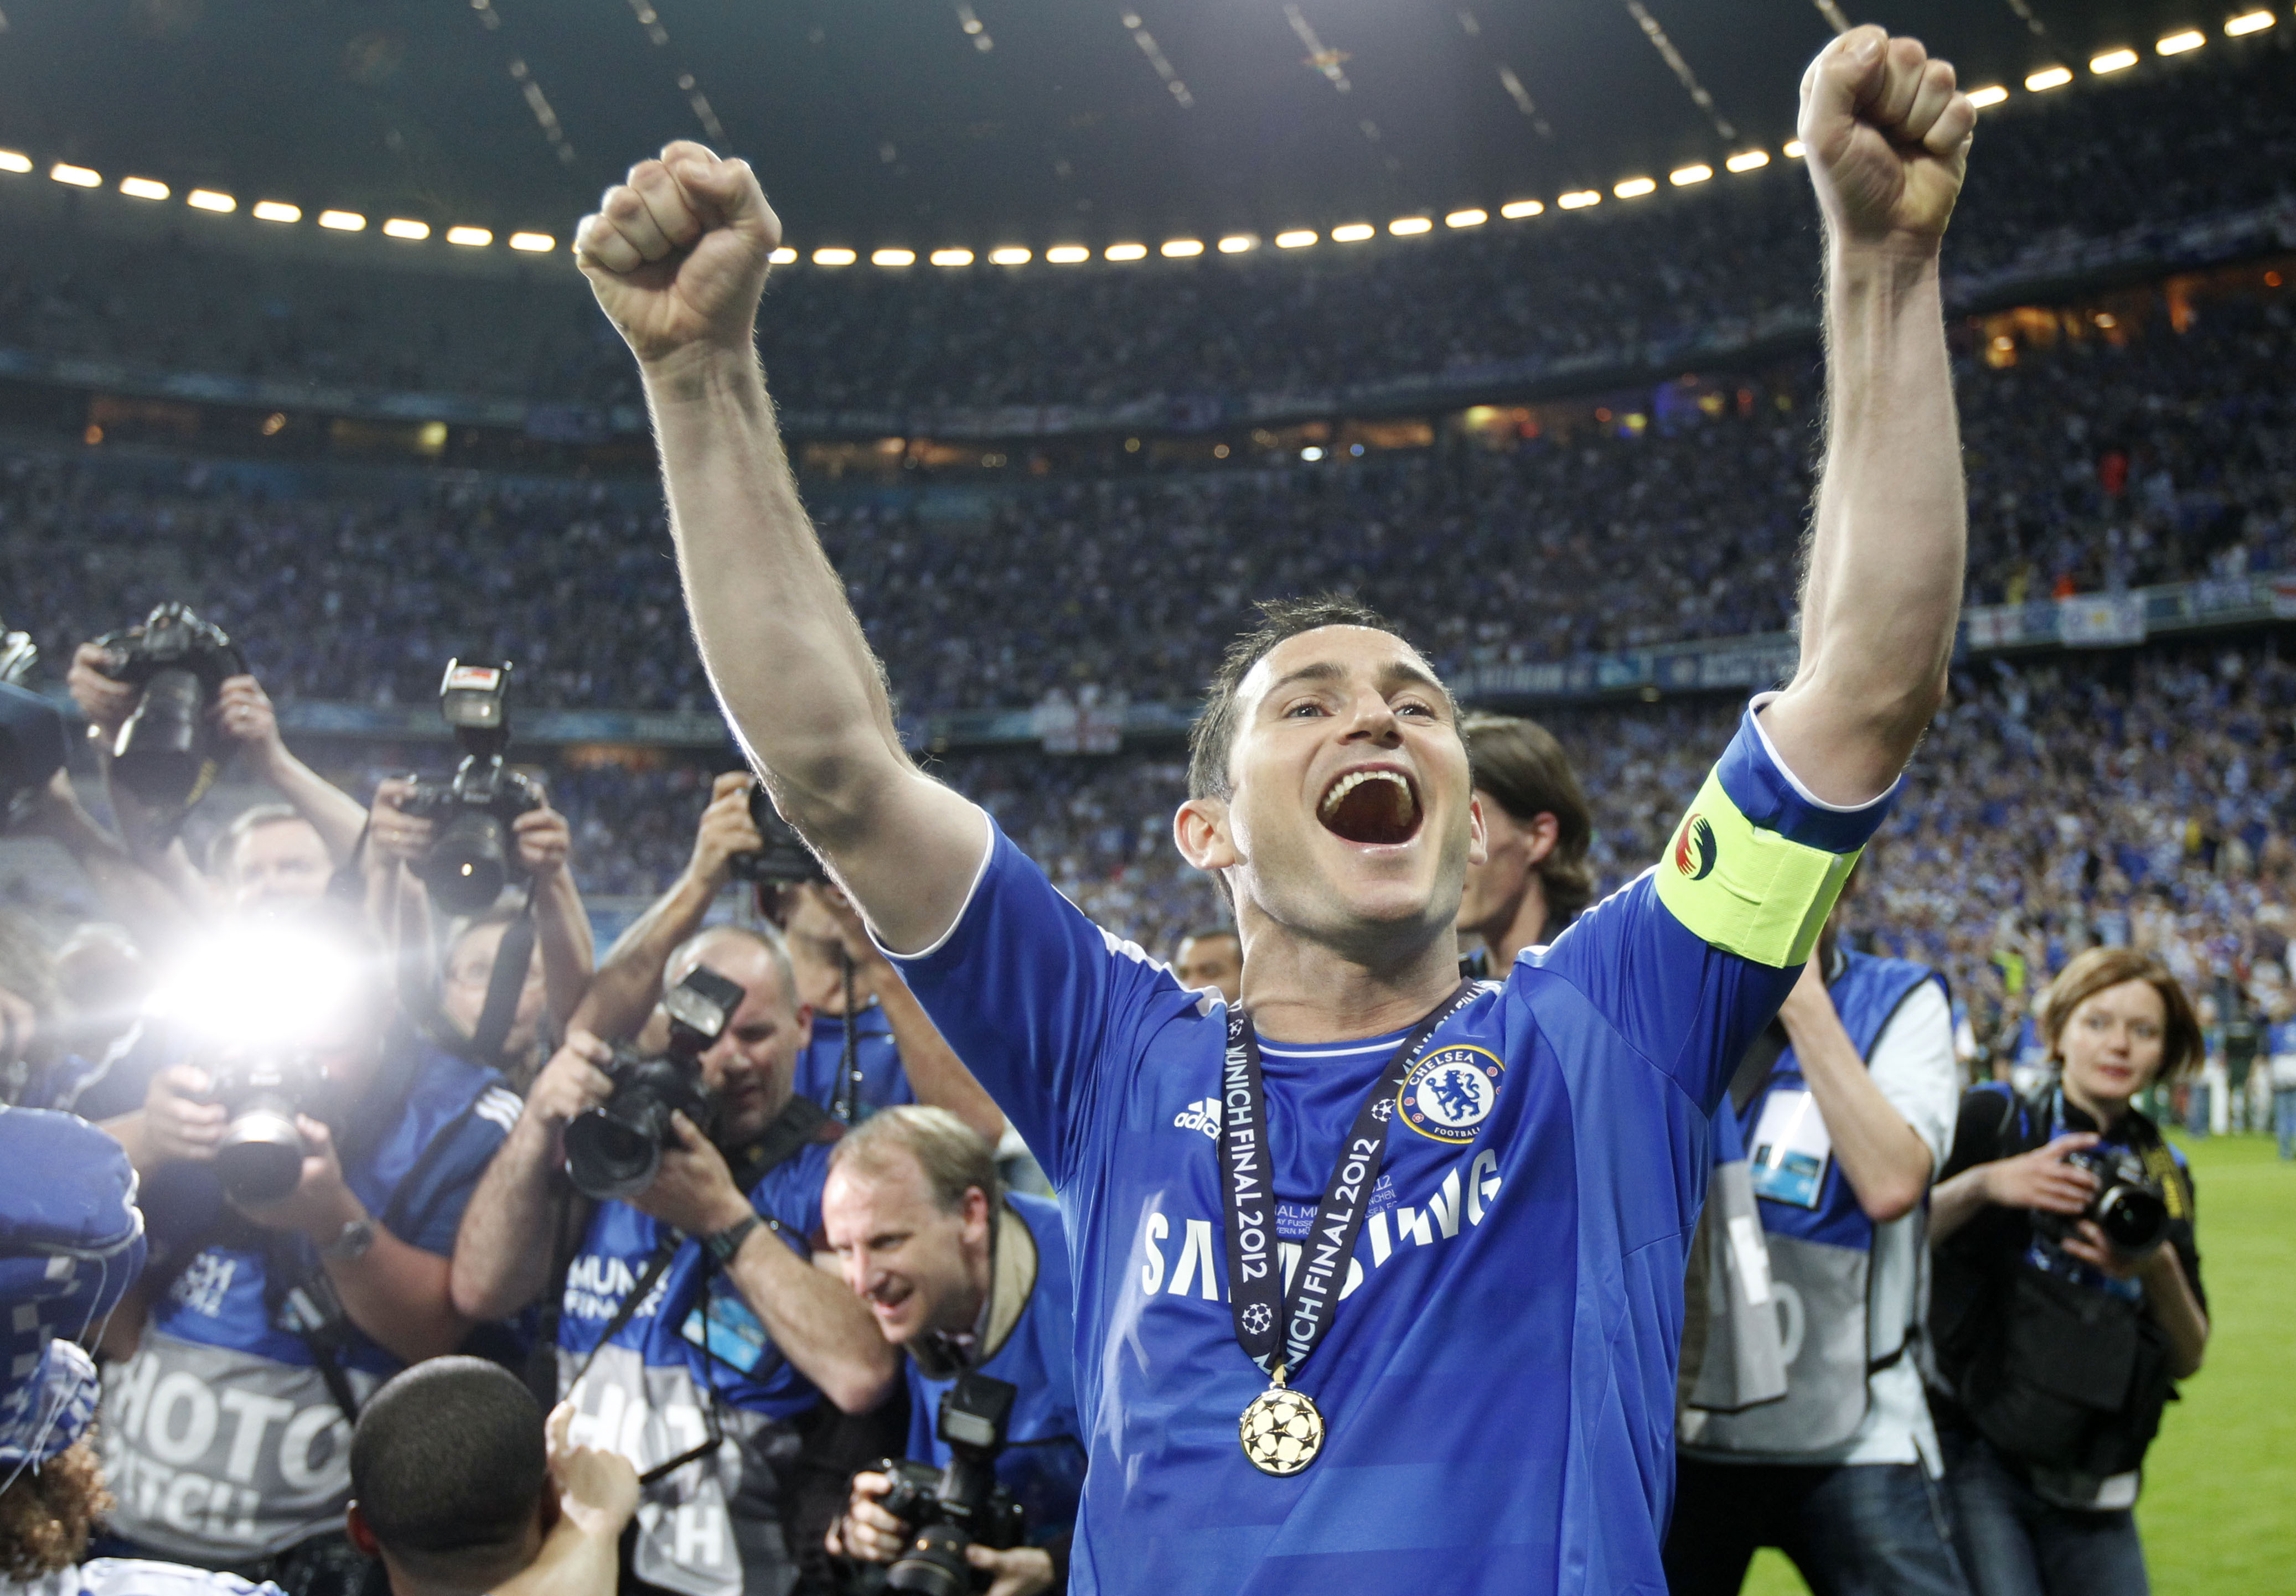 Lampard has been voted the club's greatest player. Image: PA Images